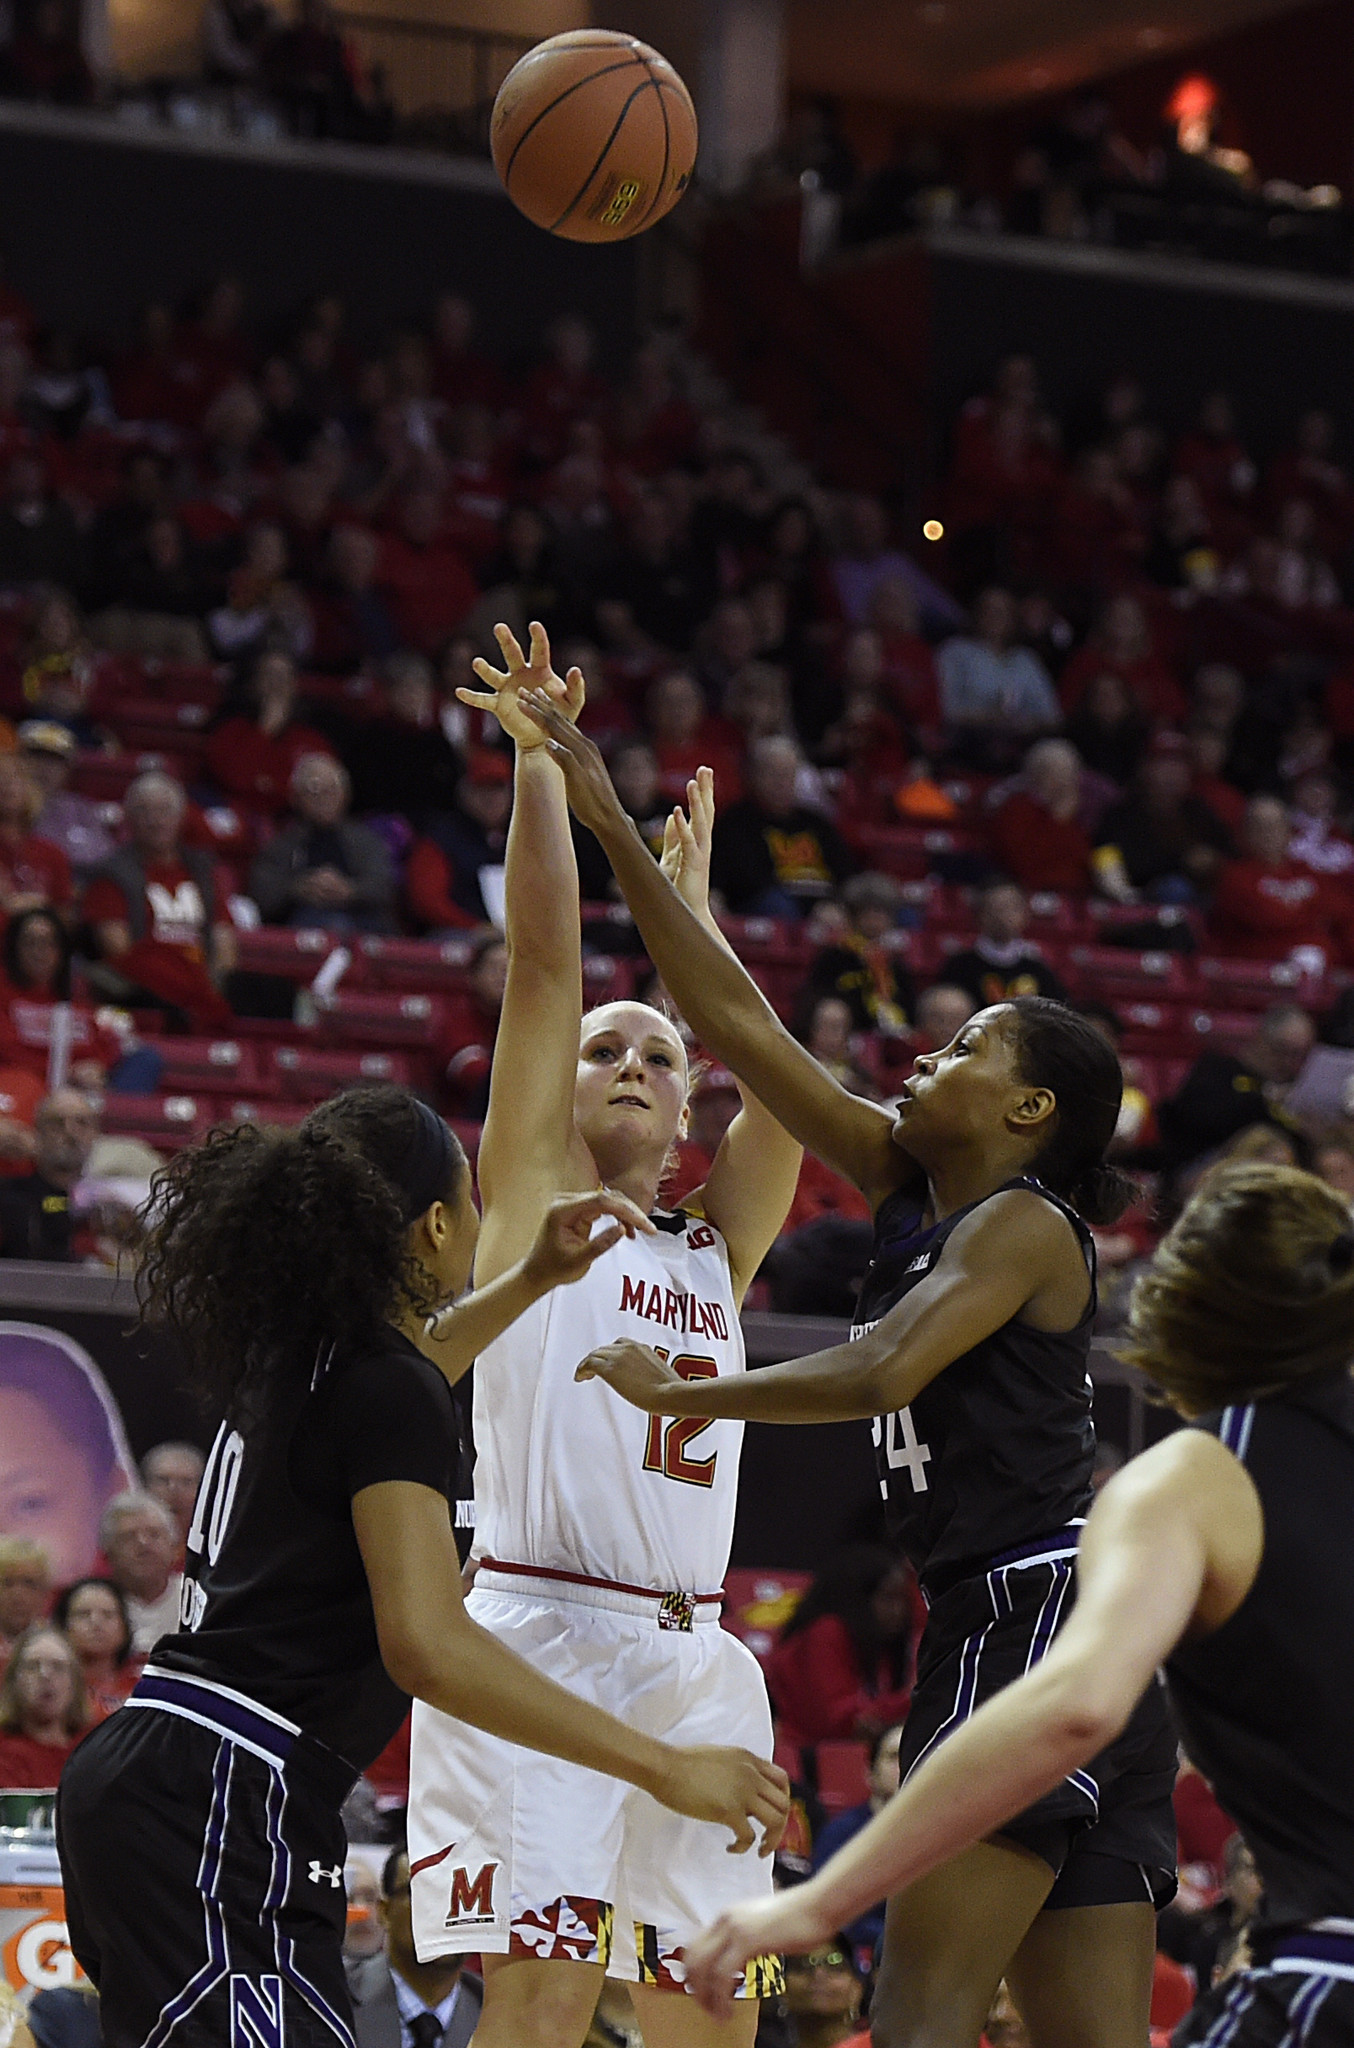 Bal-hot-shooting-kristen-confroy-leads-no-5-maryland-women-to-92-42-win-vs-umbc-20161204